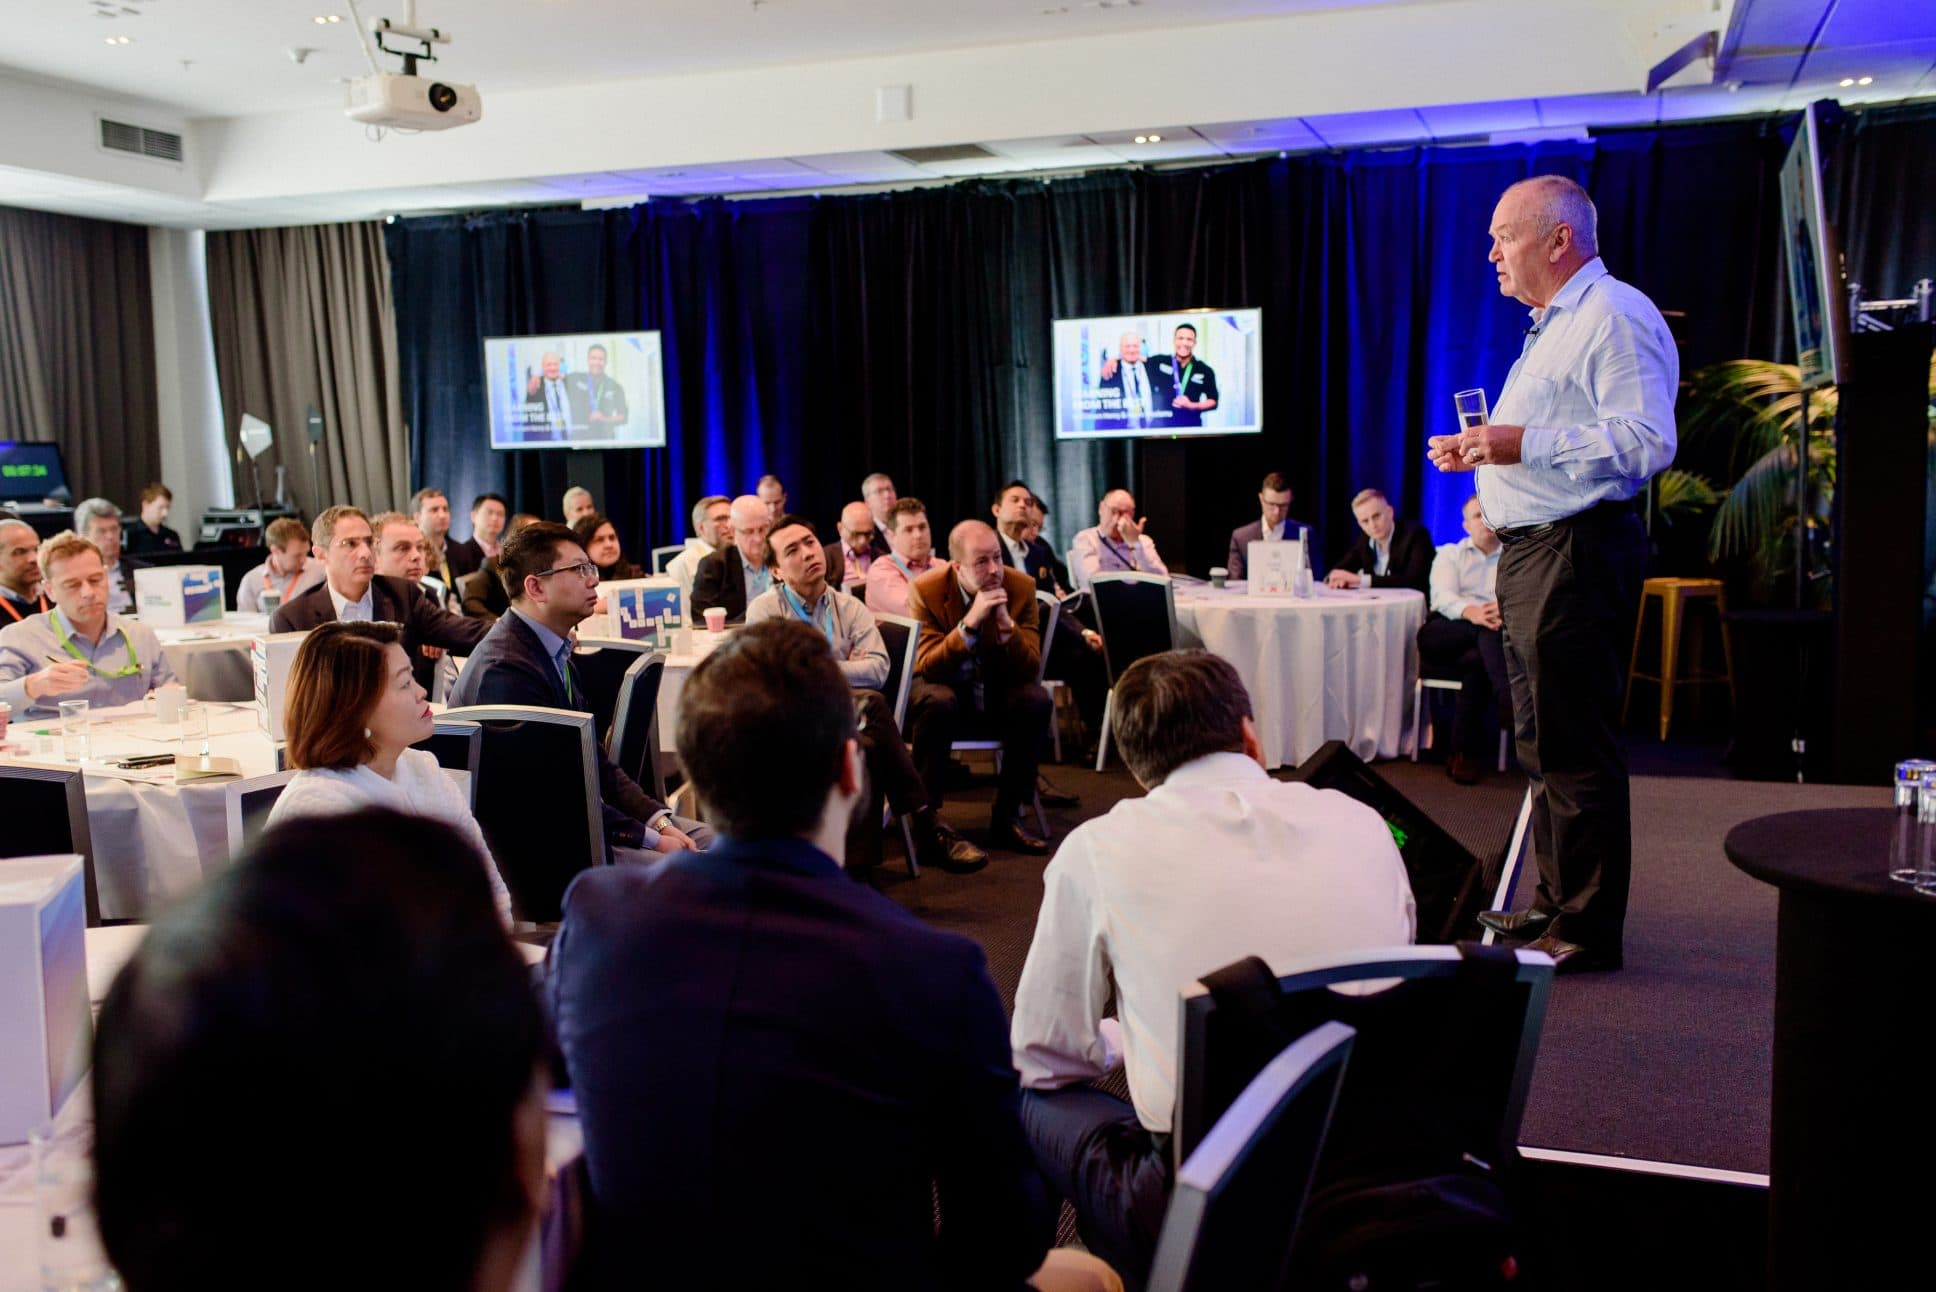 Graham Henry speaking at event at Rydges Auckland.